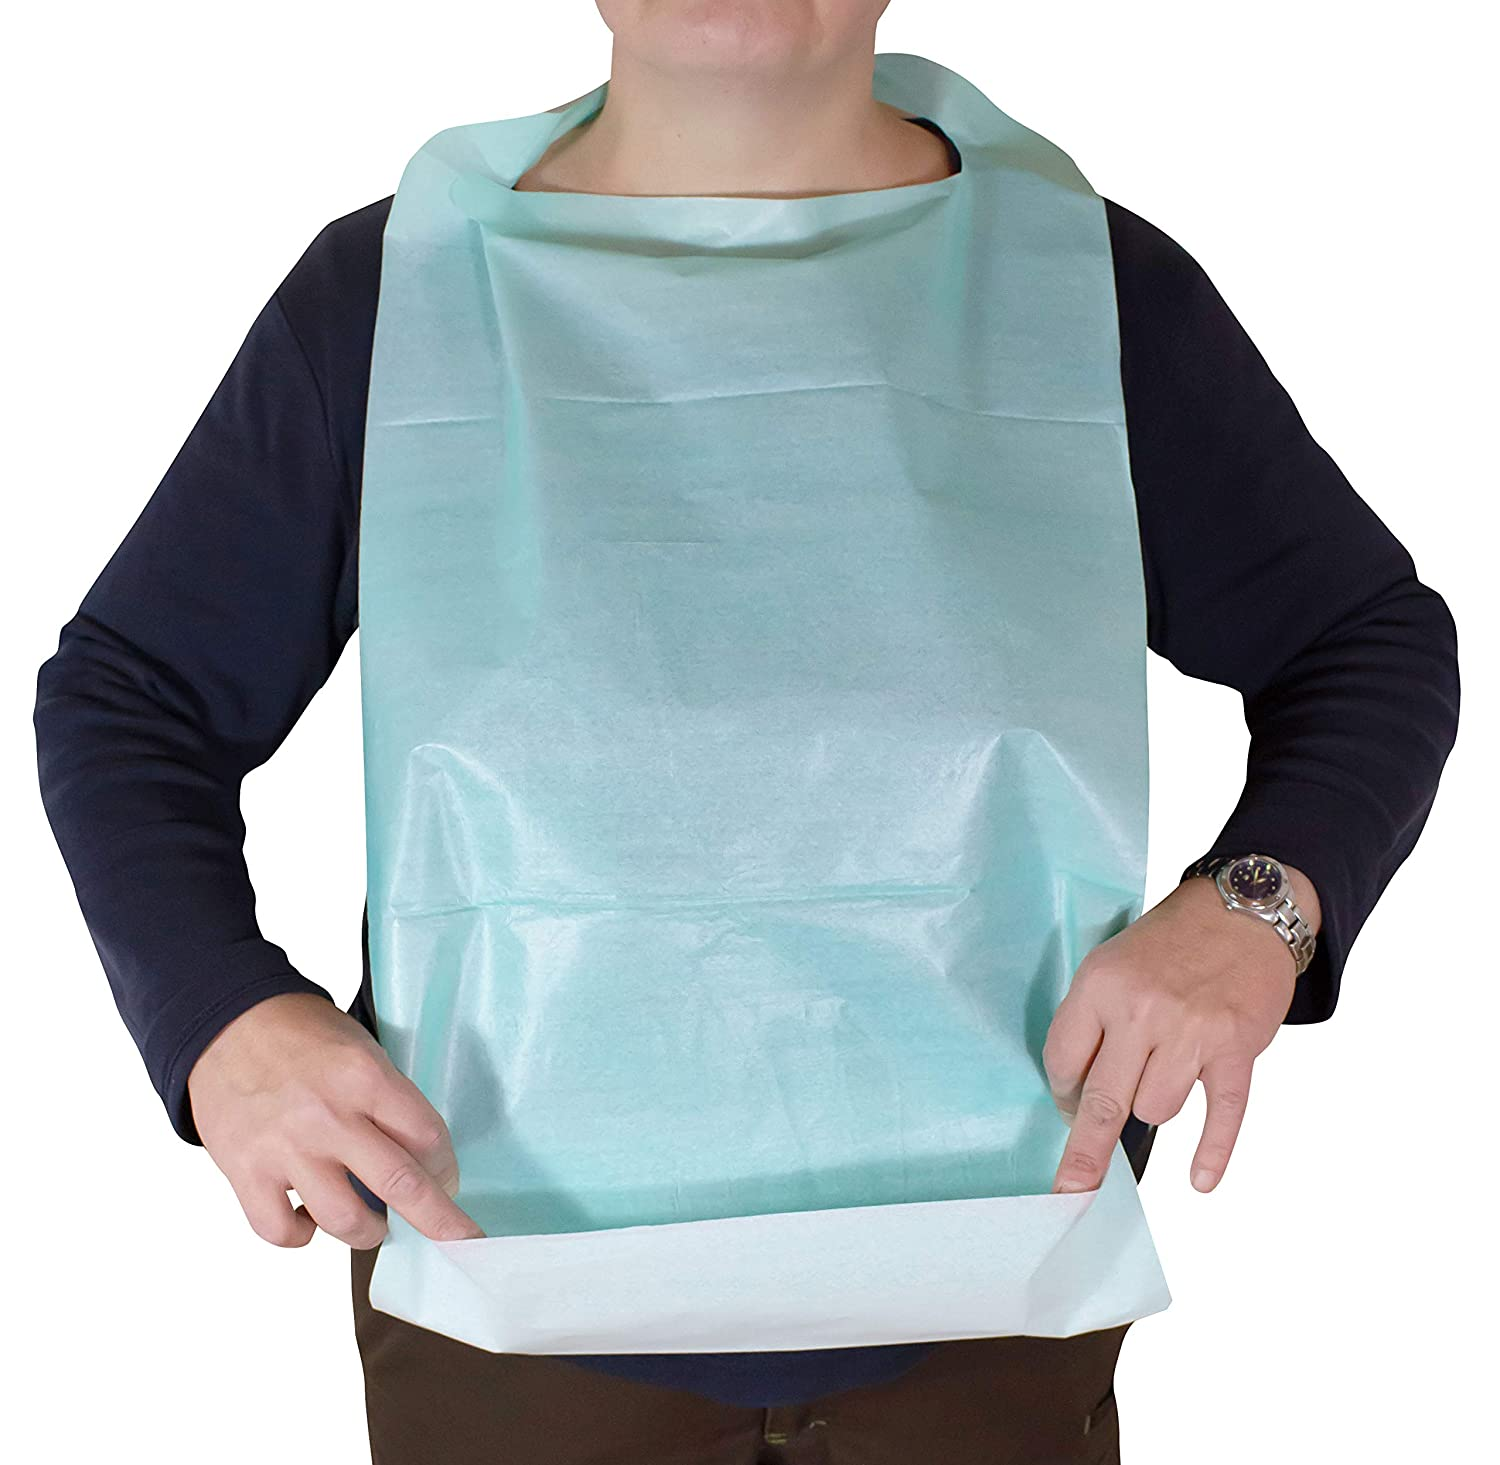 Bibs For Adults >> 50 Disposable Bibs For Adults And Children 64 Cm X 36 Cm Medi Inn